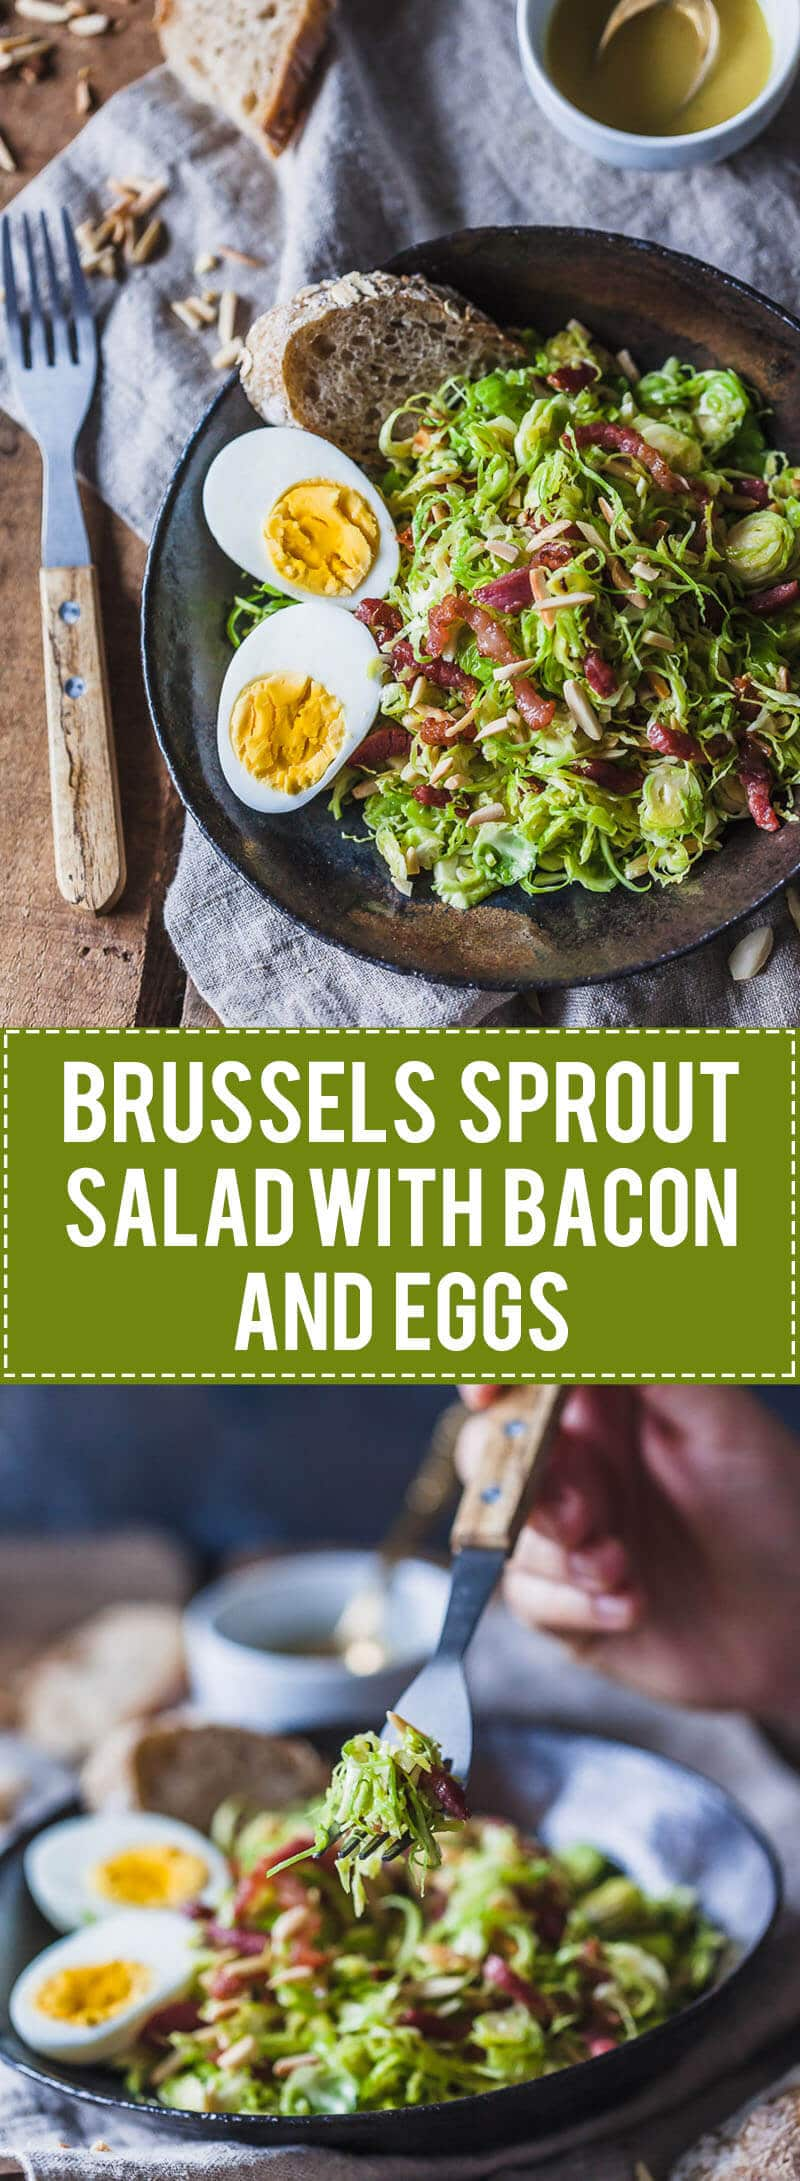 Not your standard salad, this Brussels Sprout Salad with Bacon and Eggs is a fresh take on the humble vegetable.